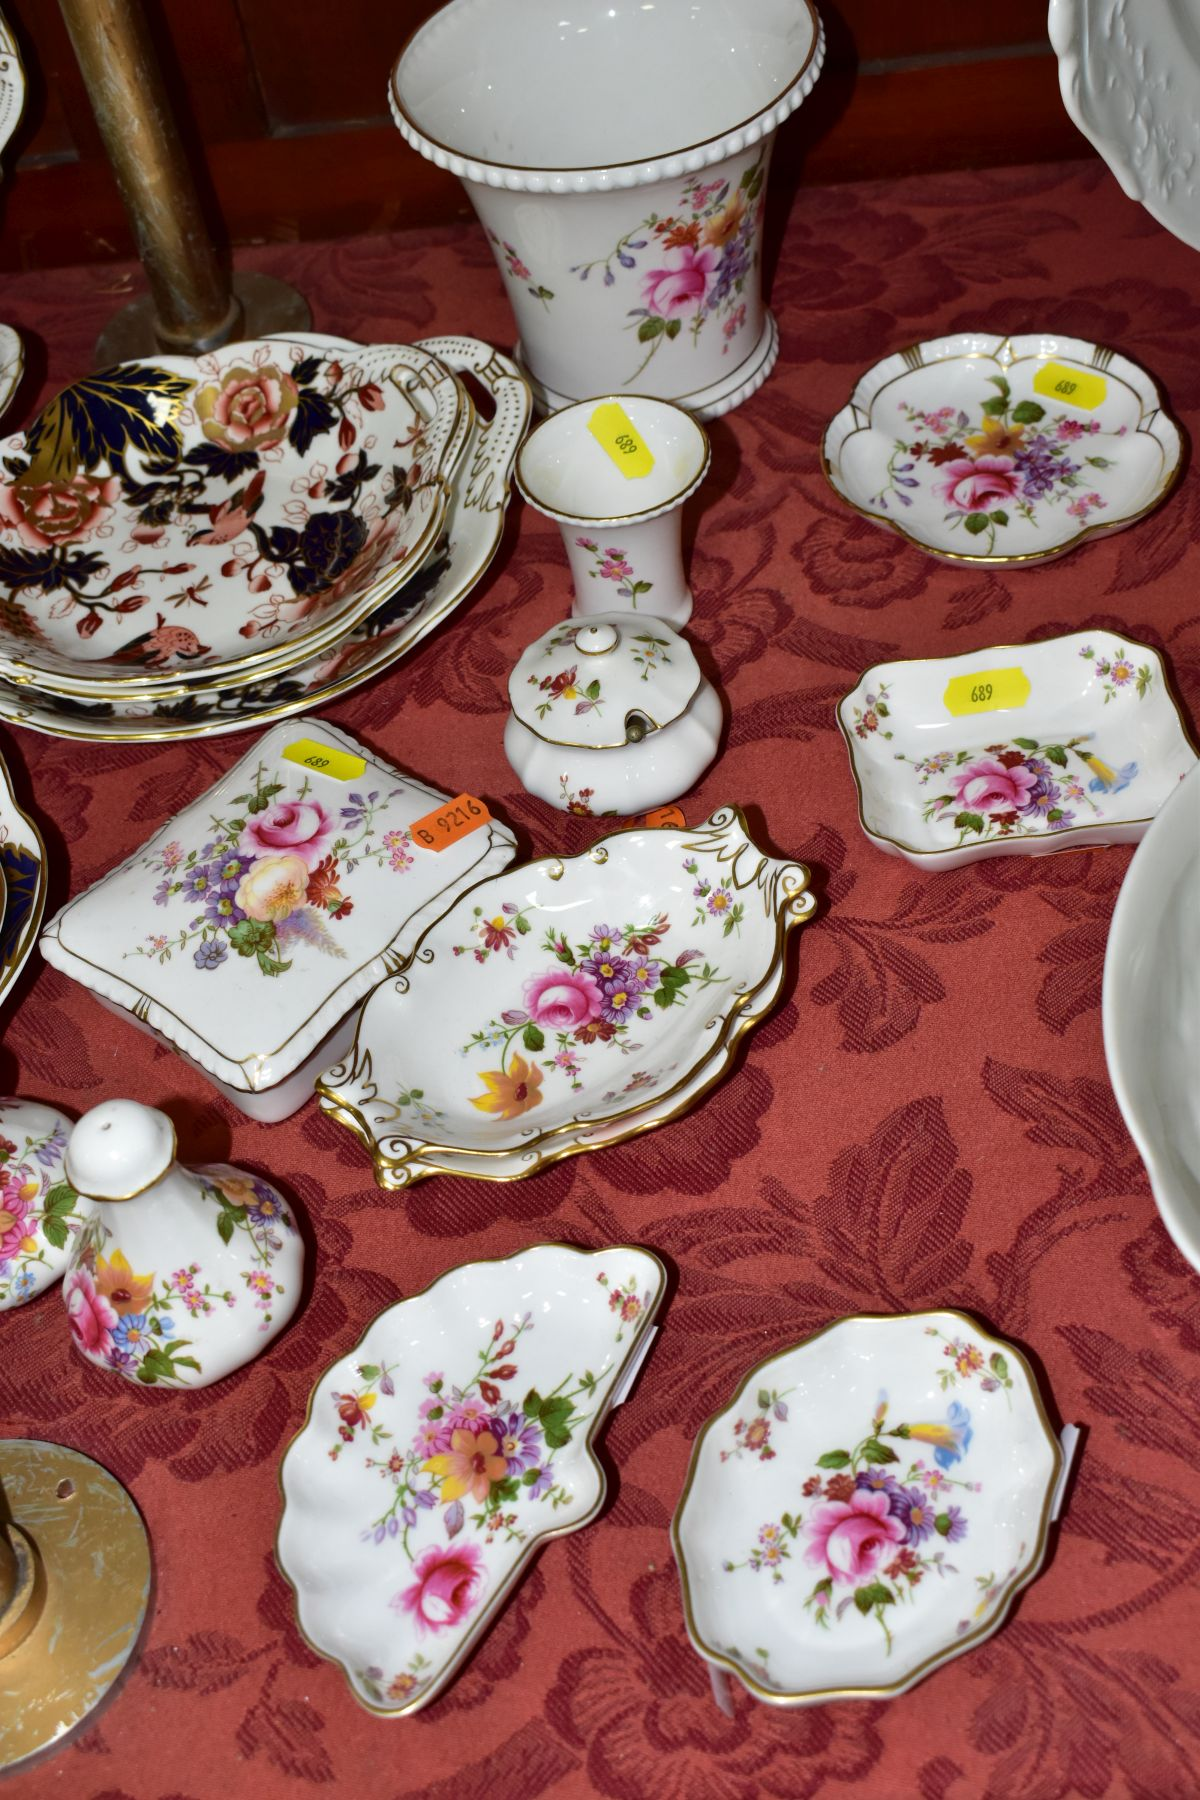 DECORATIVE CERAMICS, ETC, to include Royal Crown Derby 'Derby Posies' pintrays trinket box, - Image 2 of 13